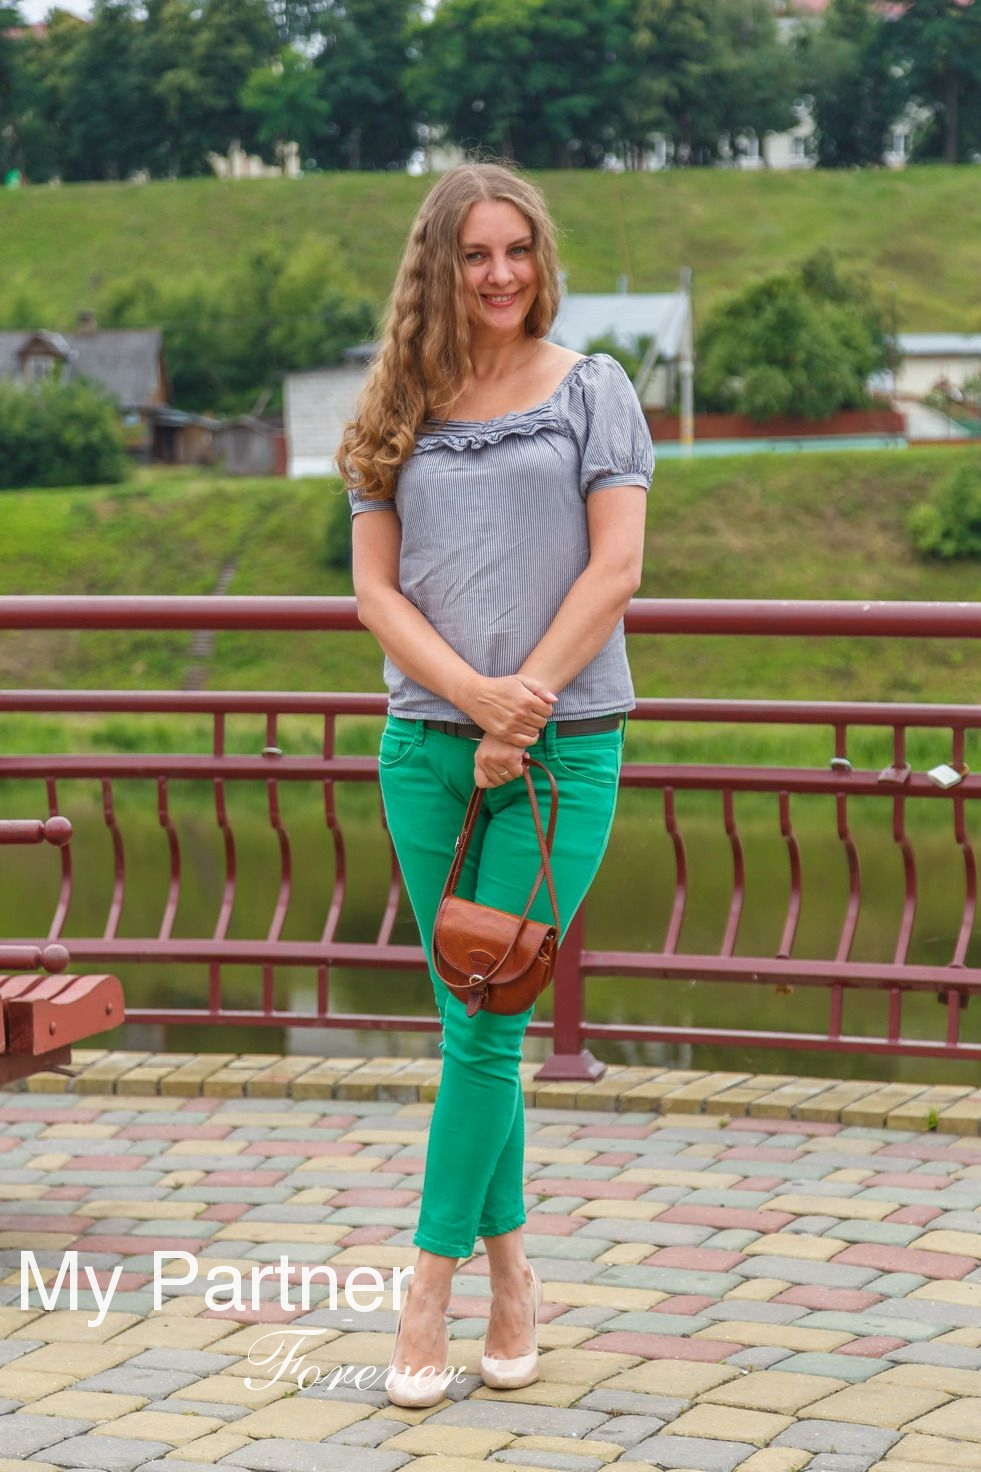 larisa christian dating site Larisa sidorova is on facebook dra r anjaria, united states of america, christian singles - usa, usa dating site, the golf widow club and more.